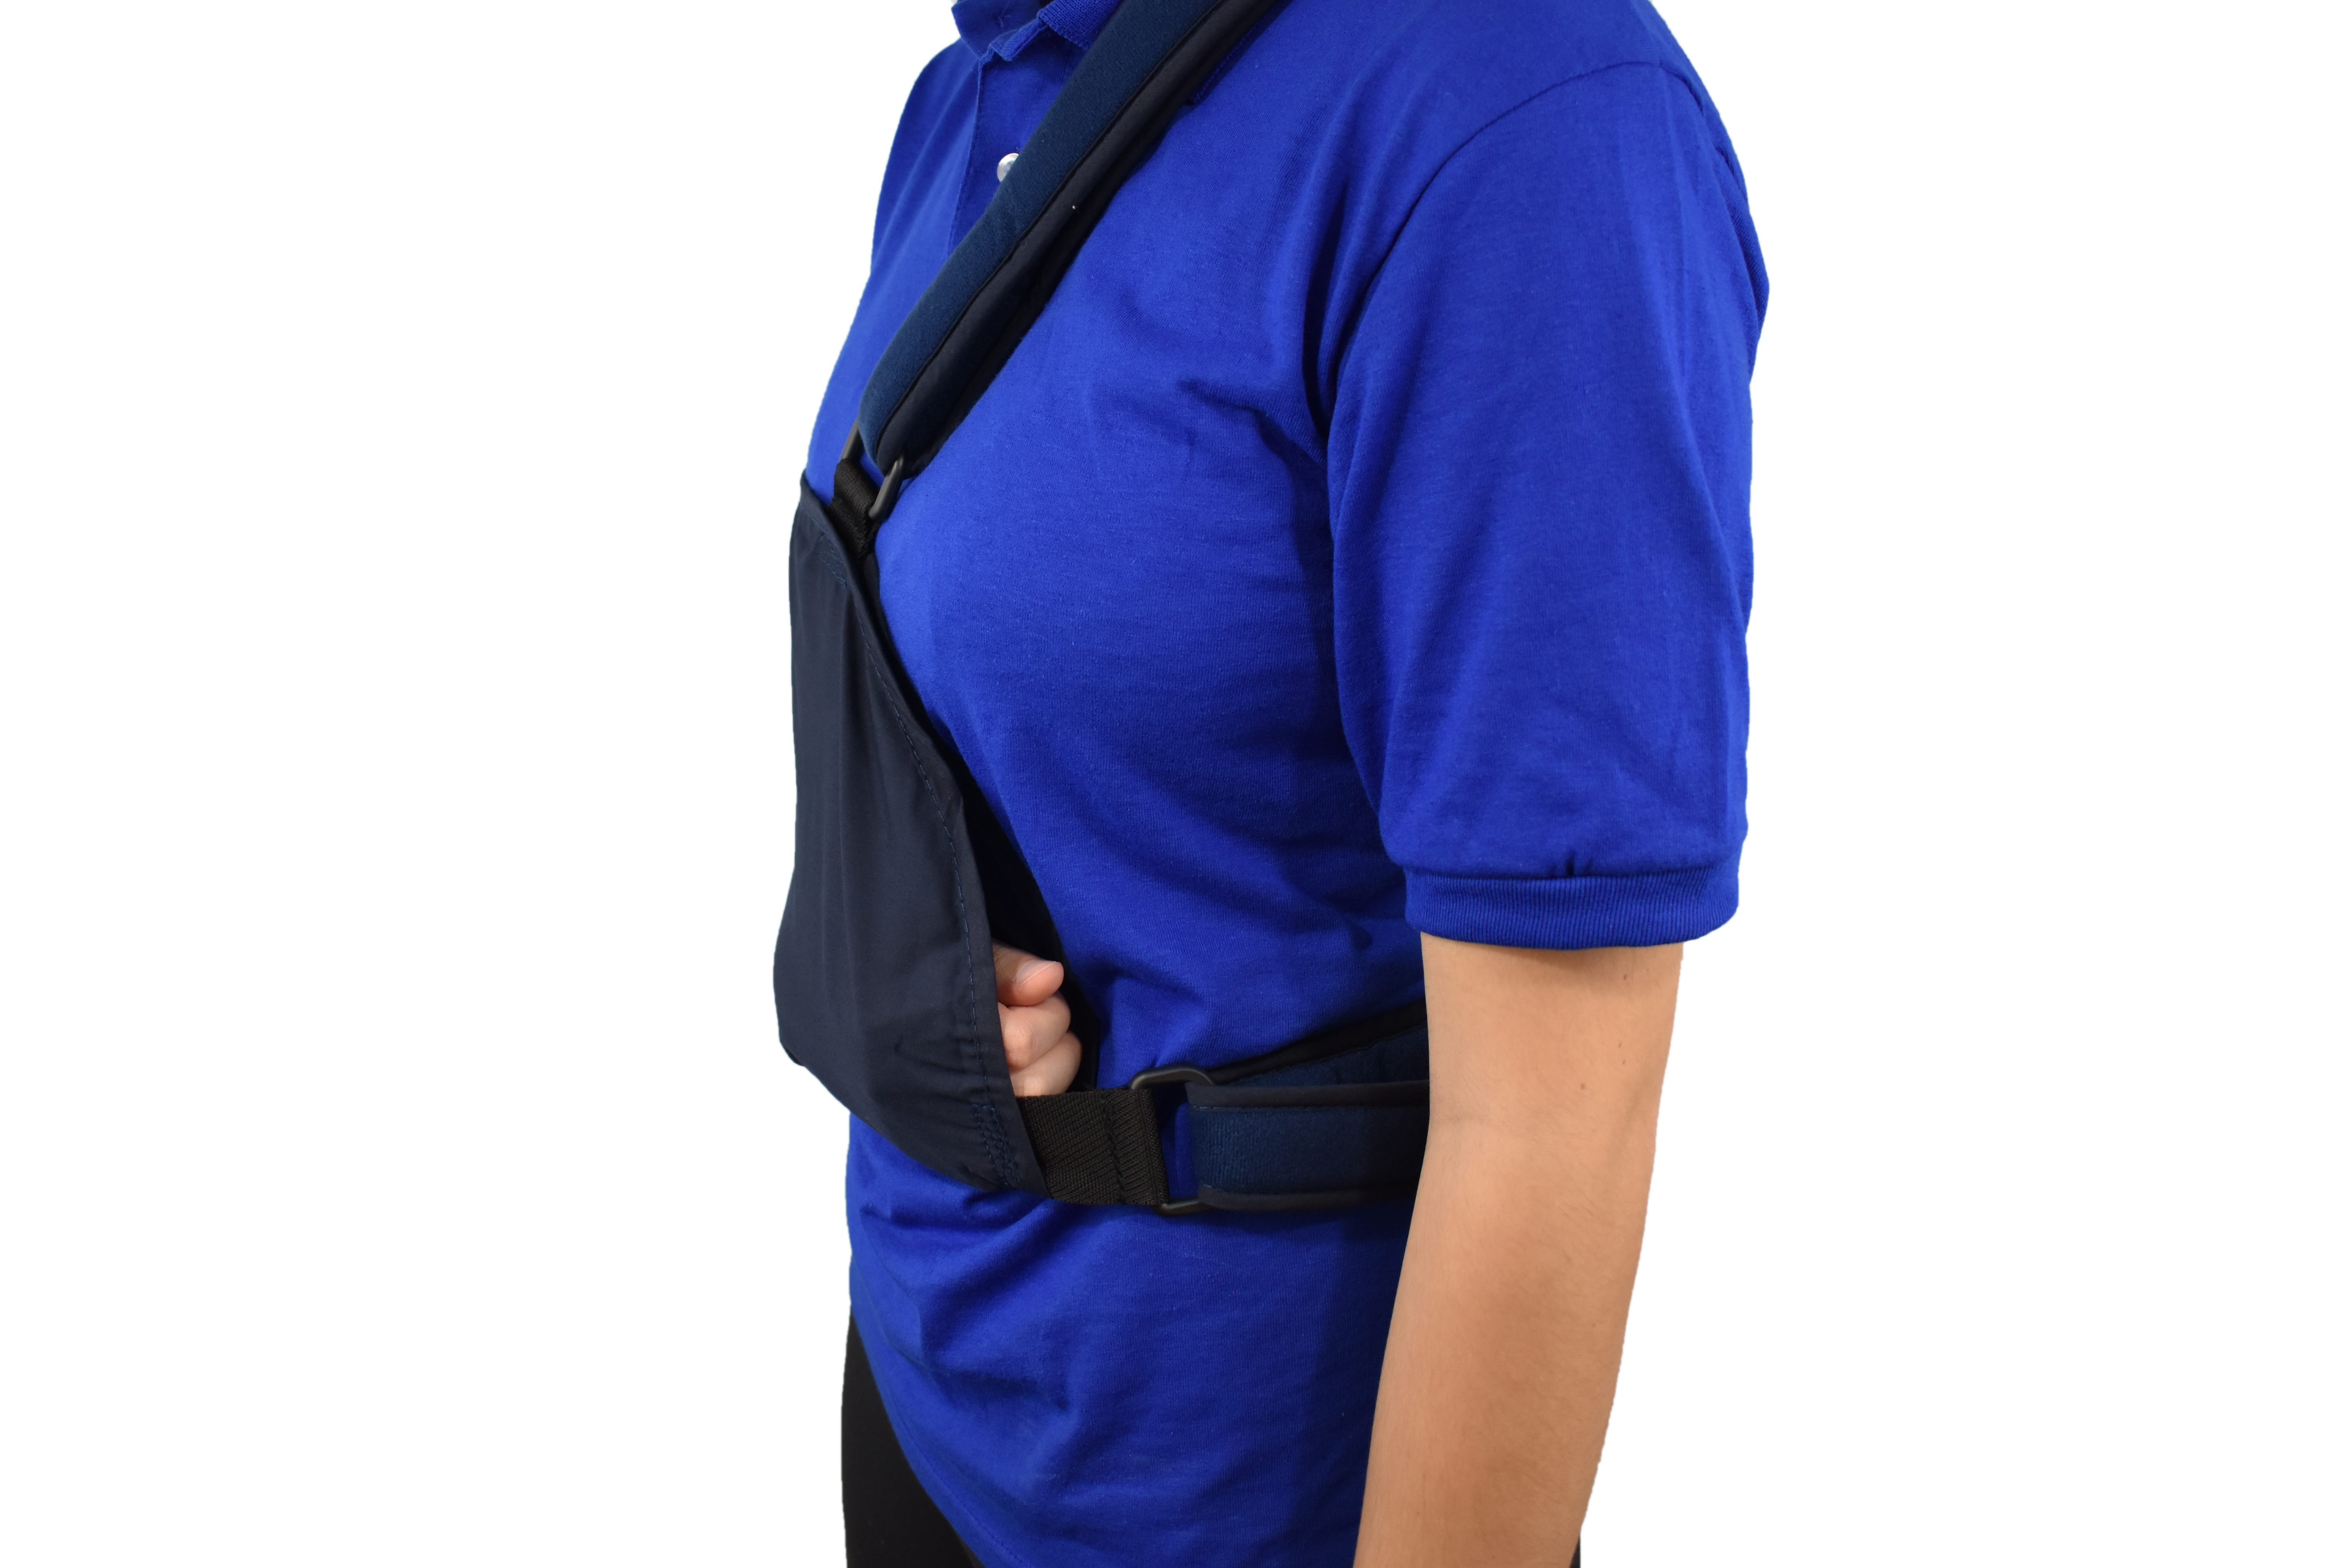 Standard Shoulder Immobilizer Side